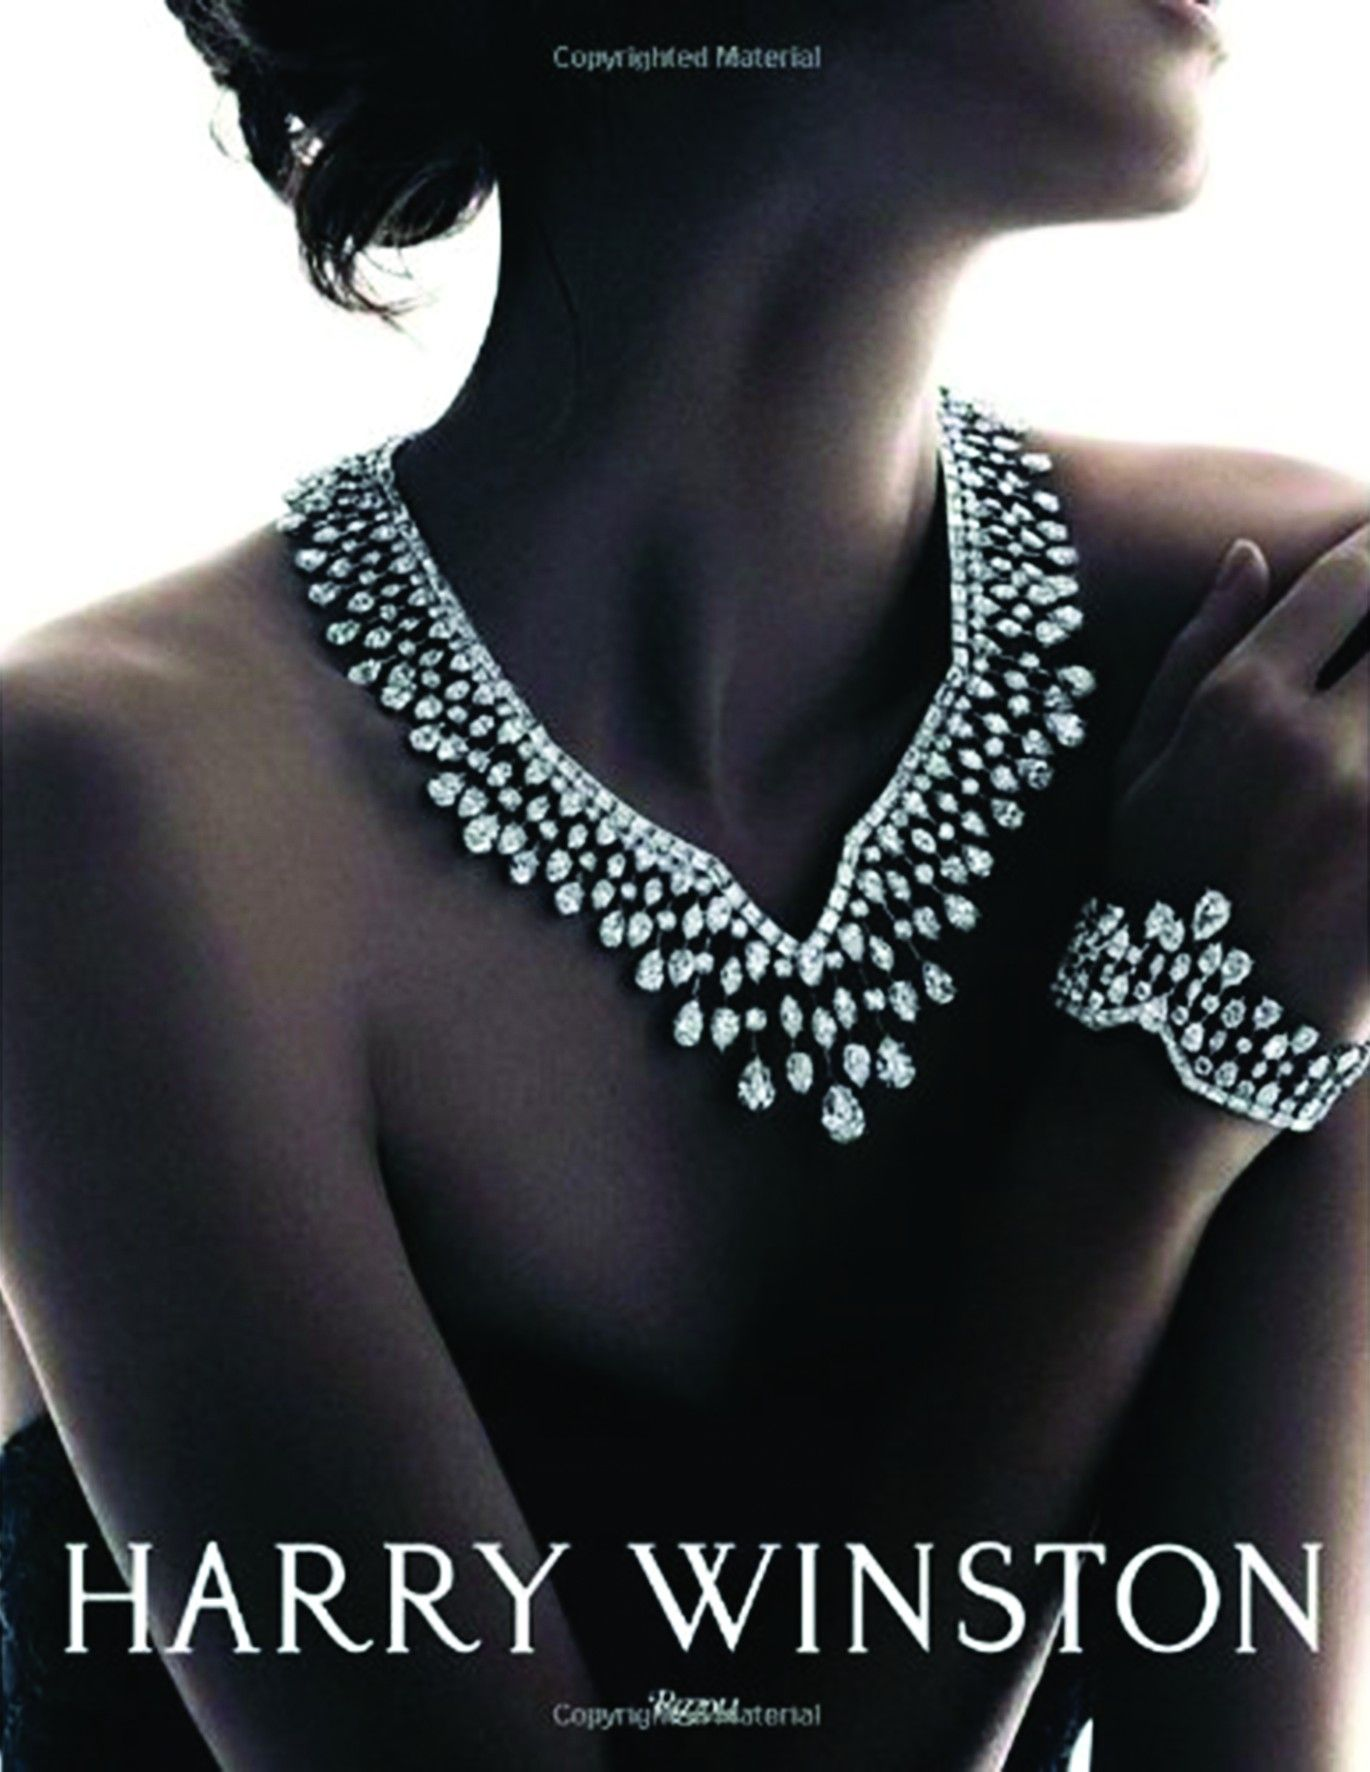 Harry Winston Jewelry Brought to you by